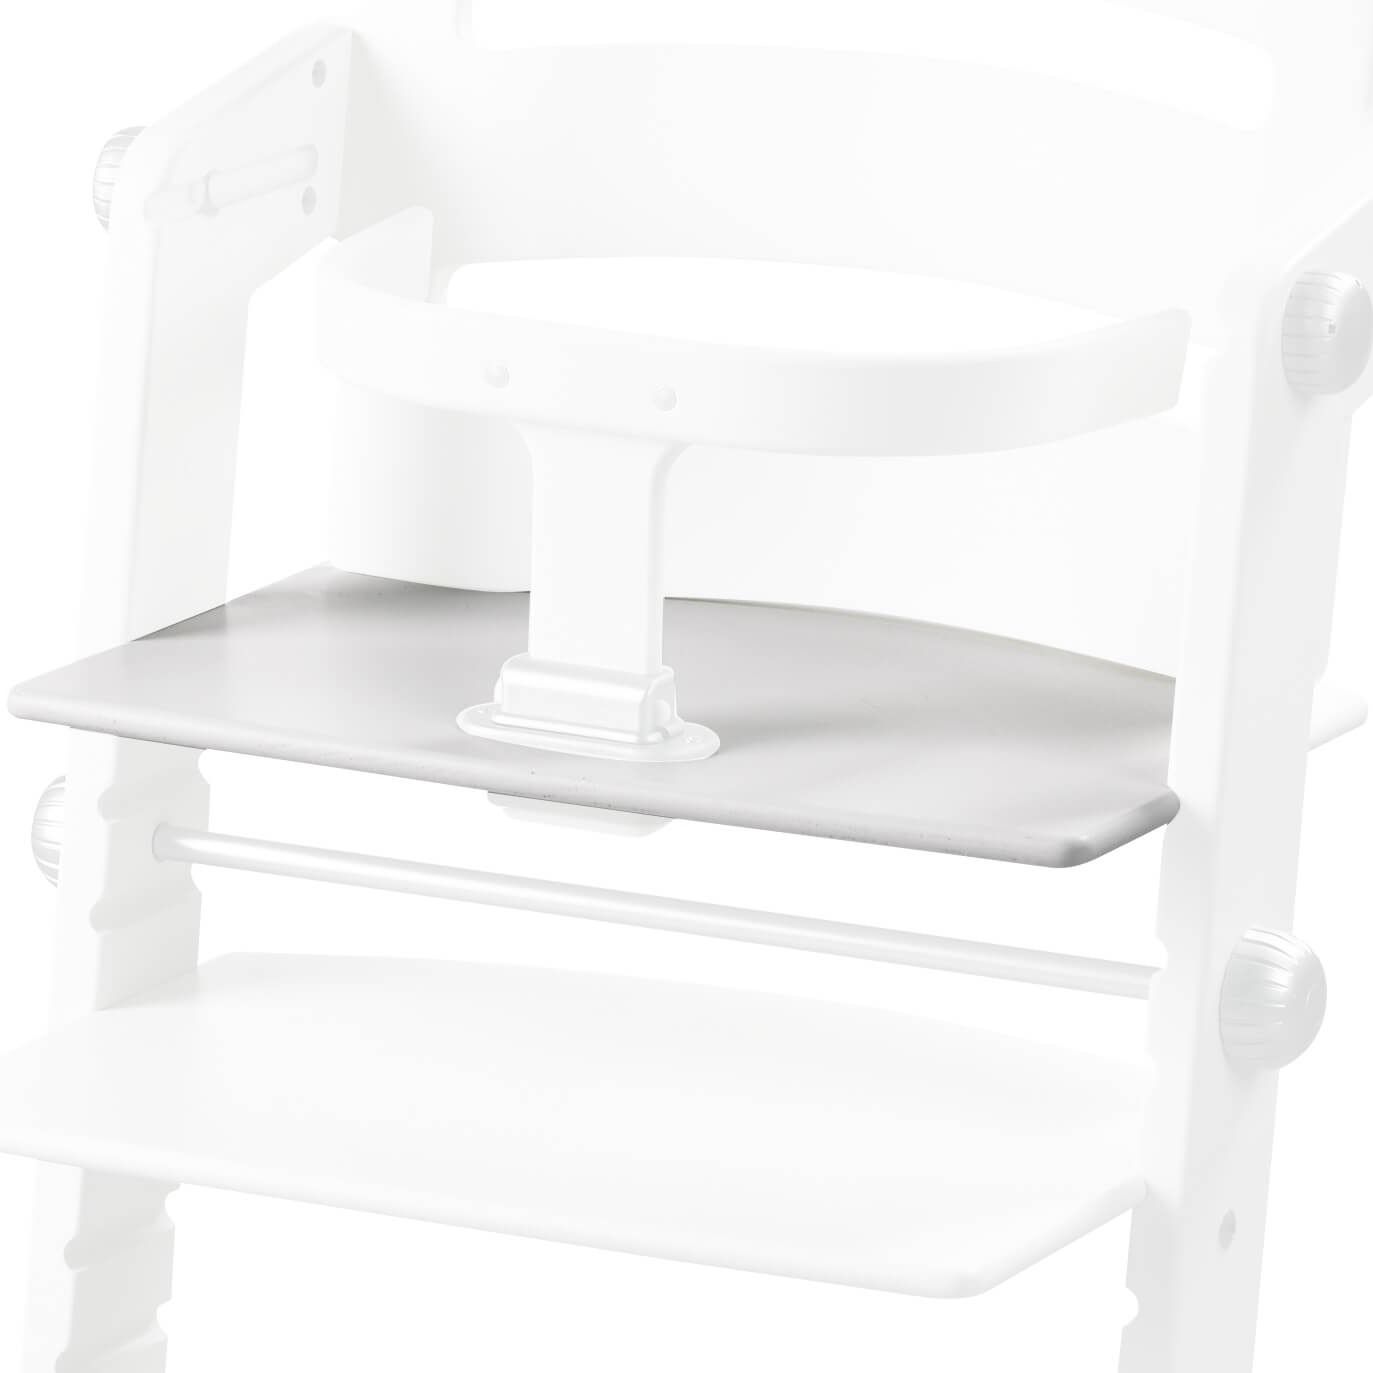 Miraculous Geuther Seat Board White For Tamino High Chair Gamerscity Chair Design For Home Gamerscityorg